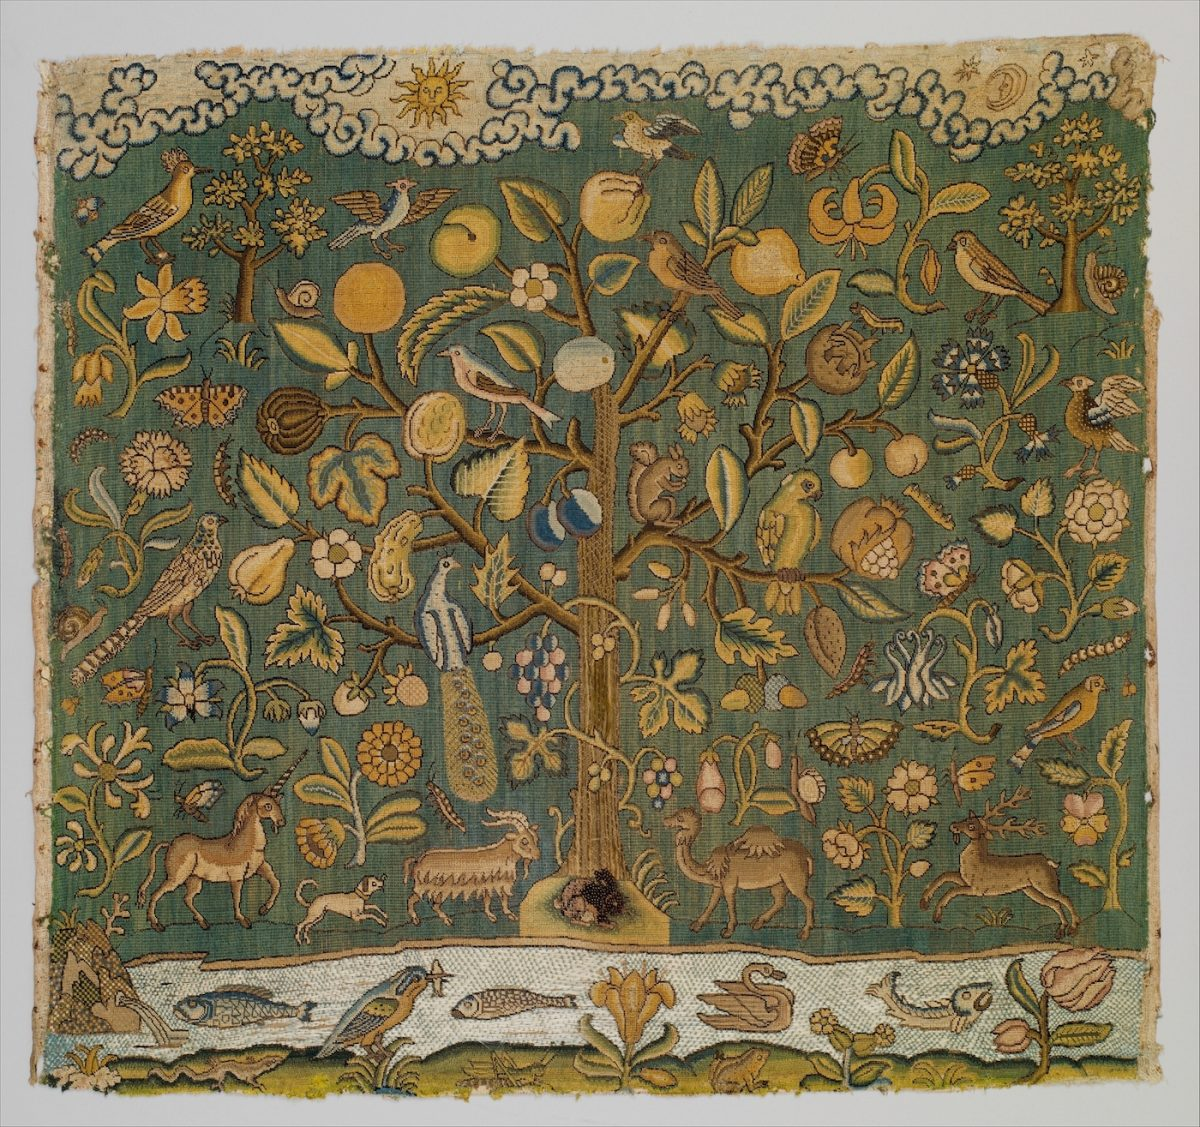 The Tree of Life - Tapestry, English, first half of 17th century Canvas worked with silk thread; tent, Gobelin, and couching stitches. (The Victoria and Albert Museum, London)